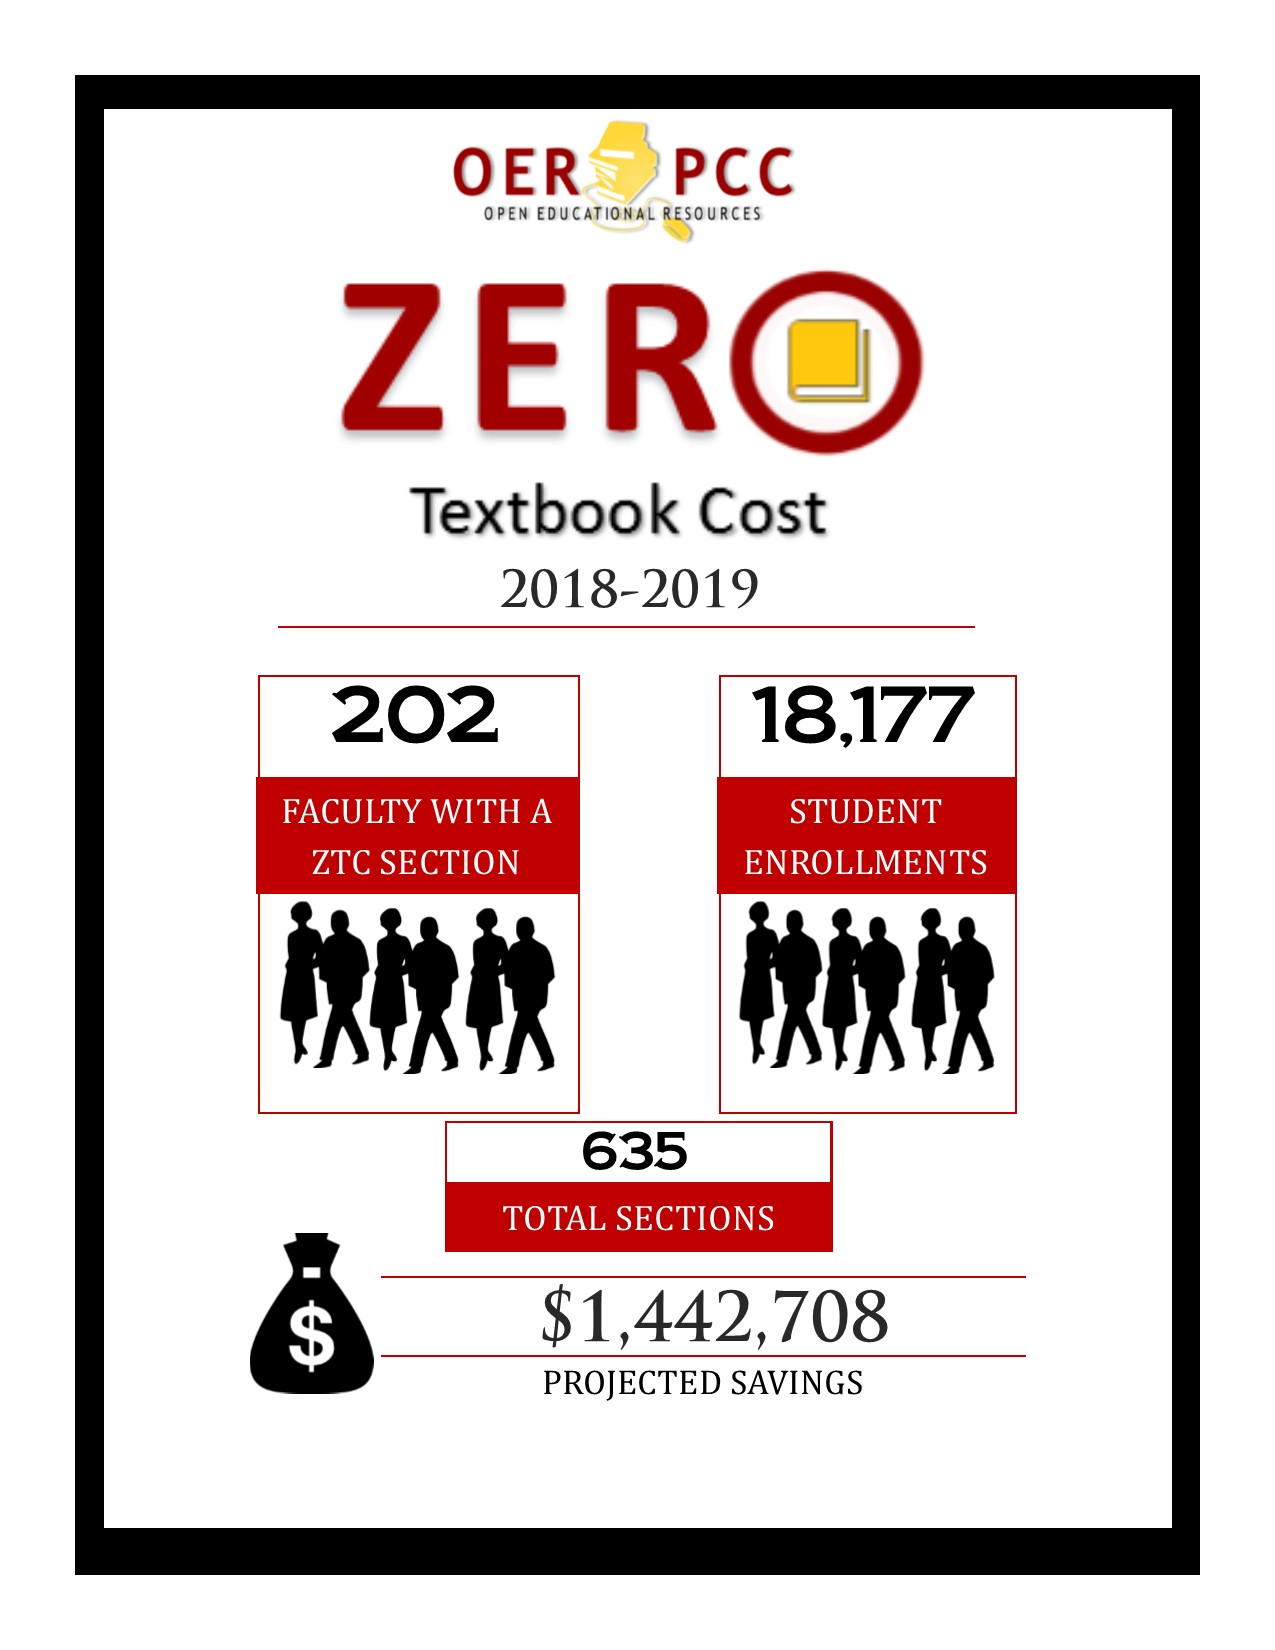 Zero Textbook Cost 2018-2019.  202 Faculty. 18,177 student enrollments. 635 total sections. $1,442,708 projected savings.